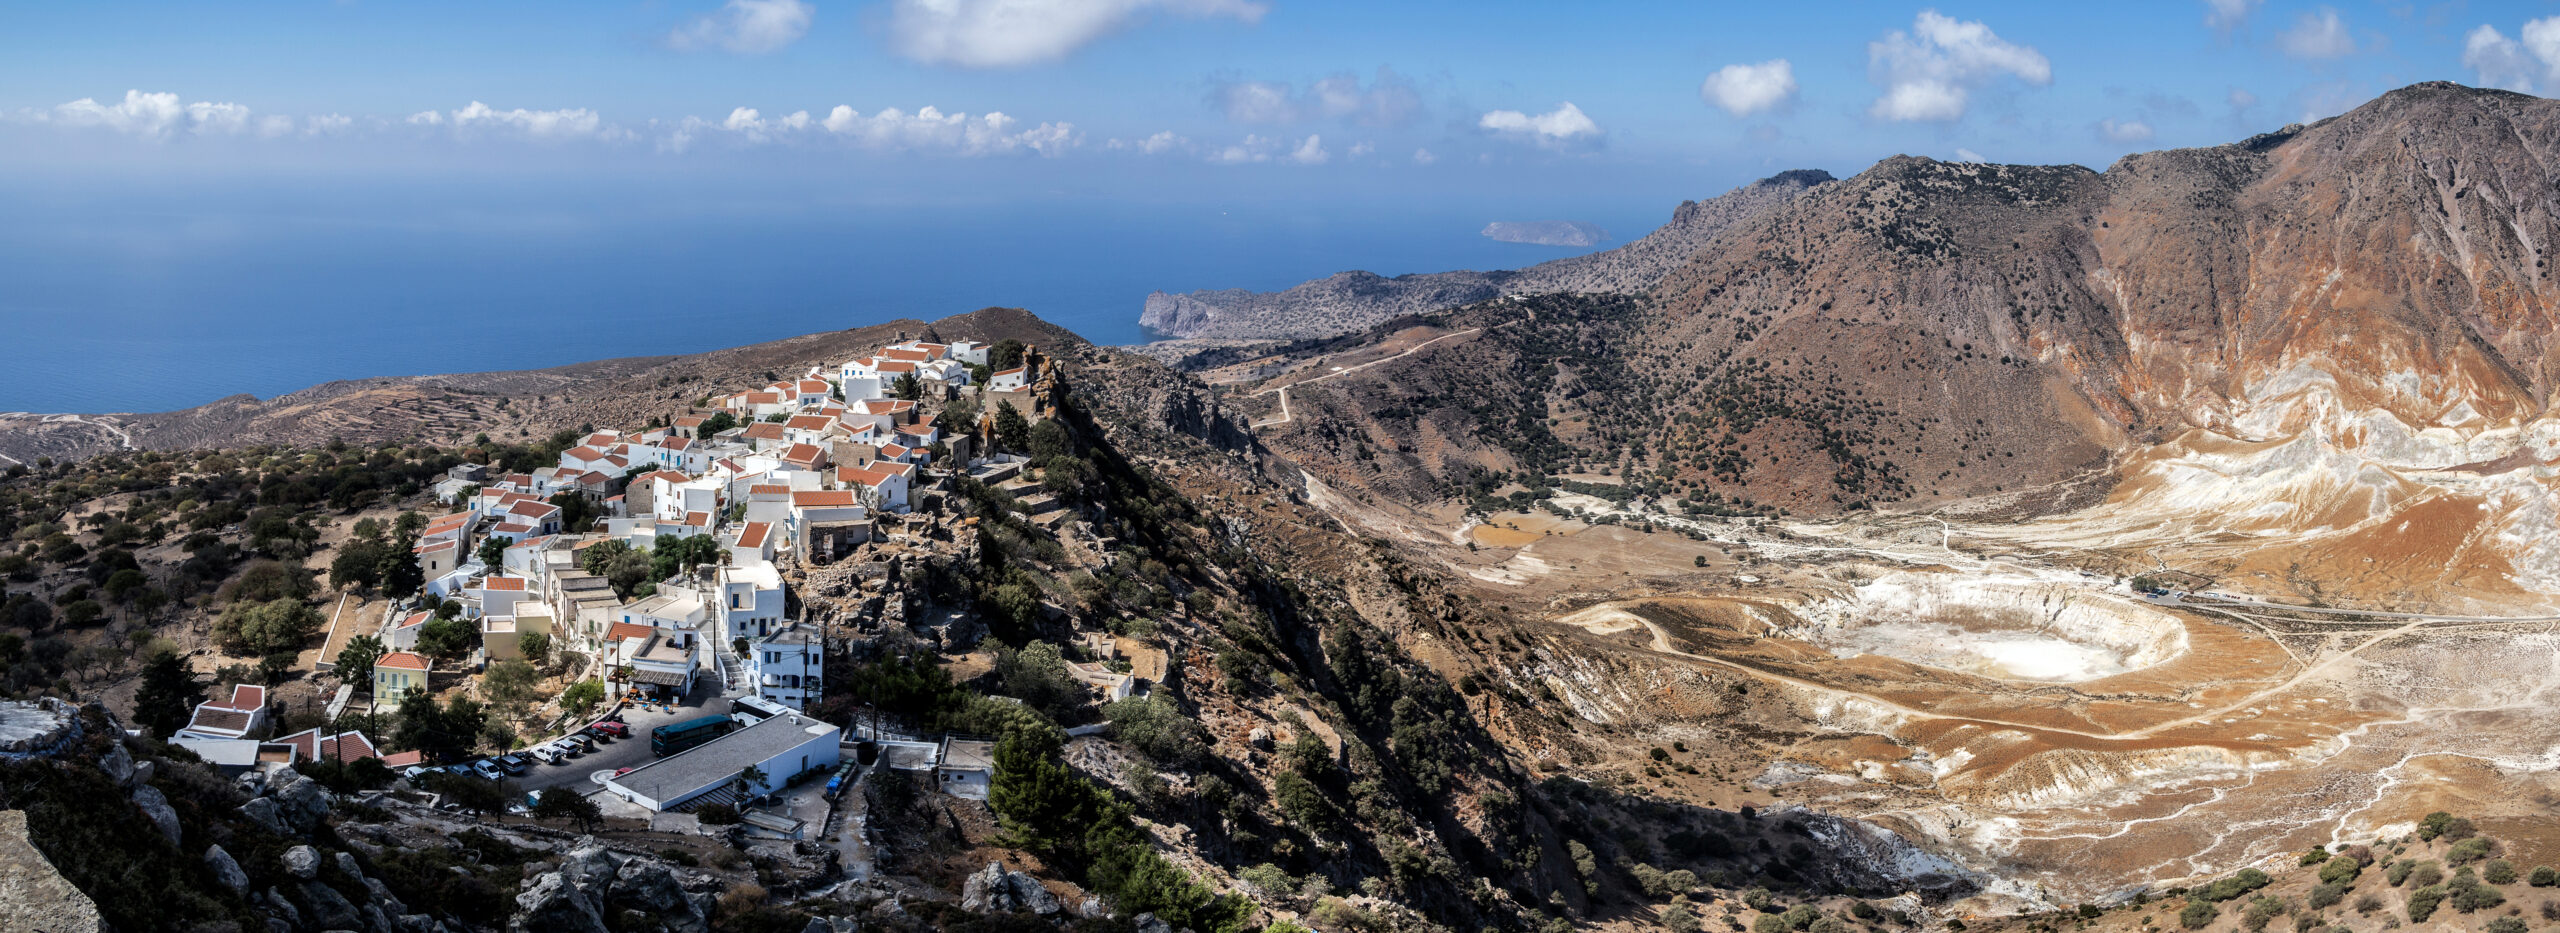 Holidays on the volcano island of Greece – And no, it's not Santorini